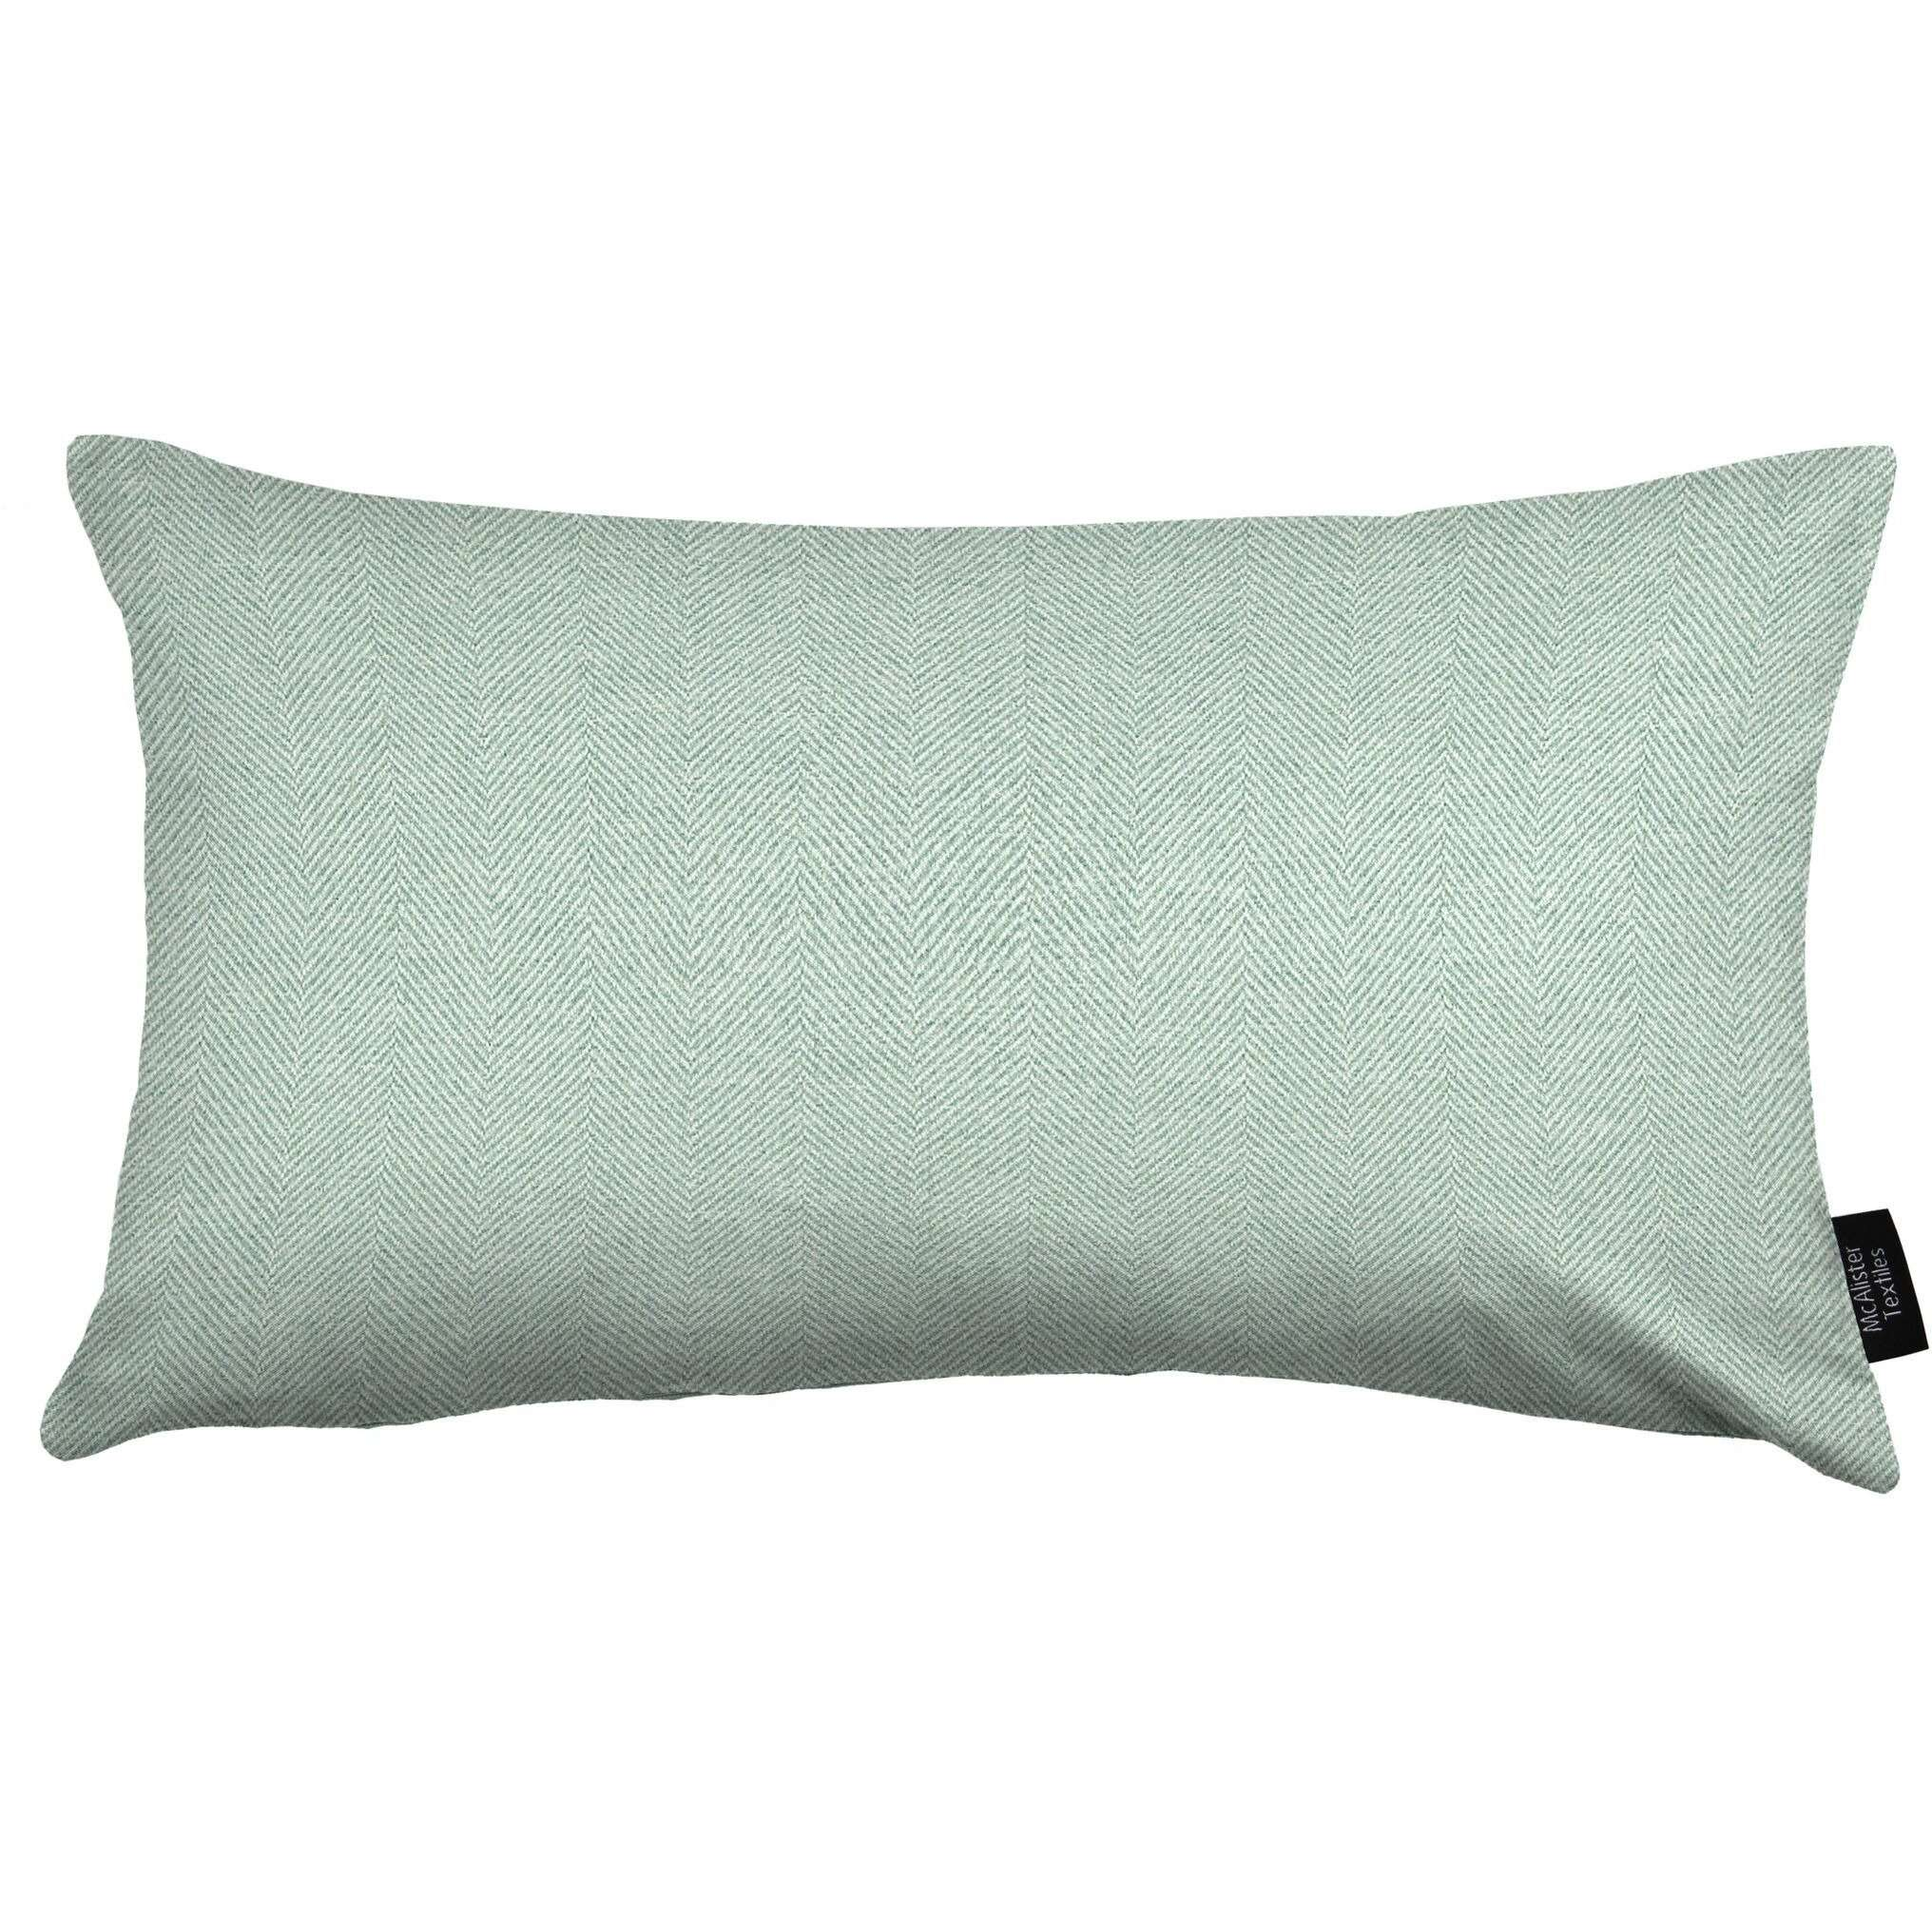 McAlister Textiles Herringbone Duck Egg Blue Pillow Pillow Cover Only 50cm x 30cm